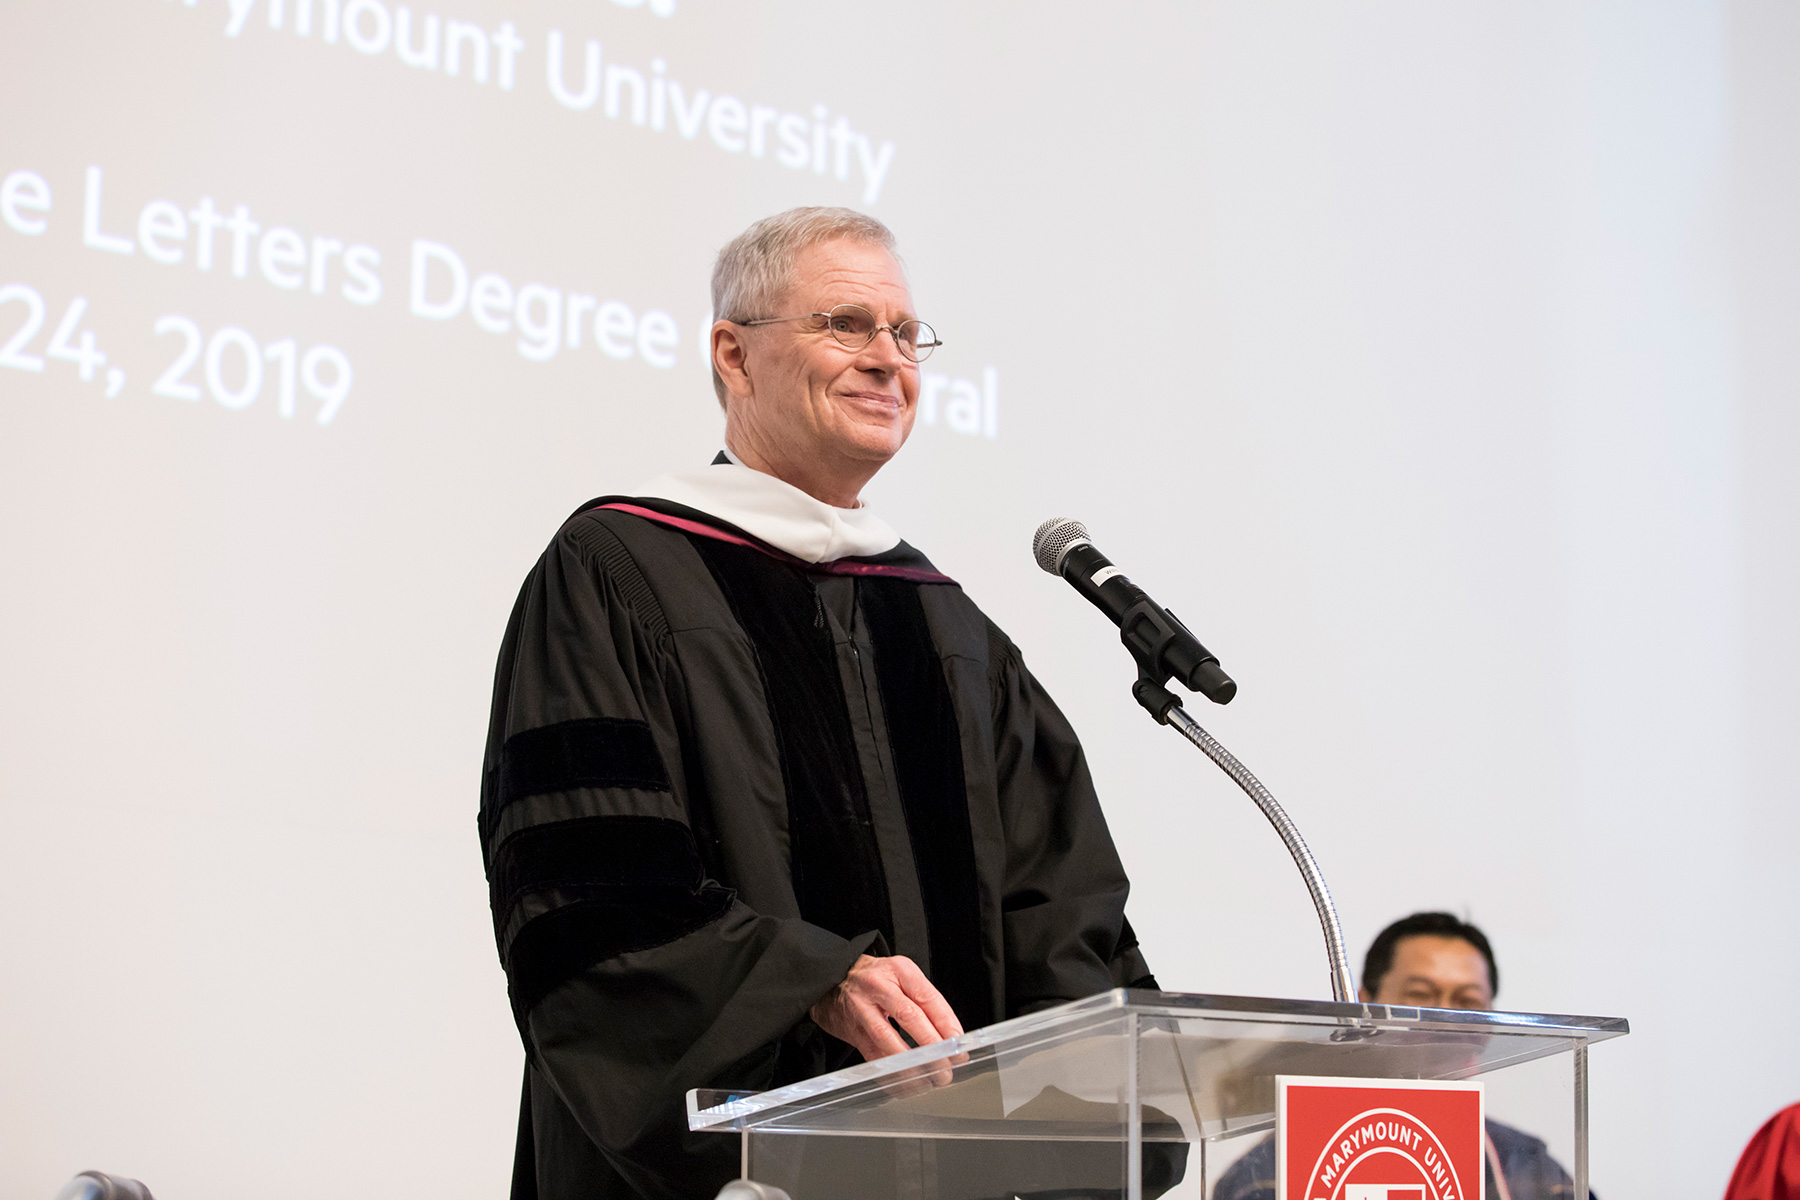 Rev. Robert B. Lawton, S.J., Receives Honorary LMU Degree